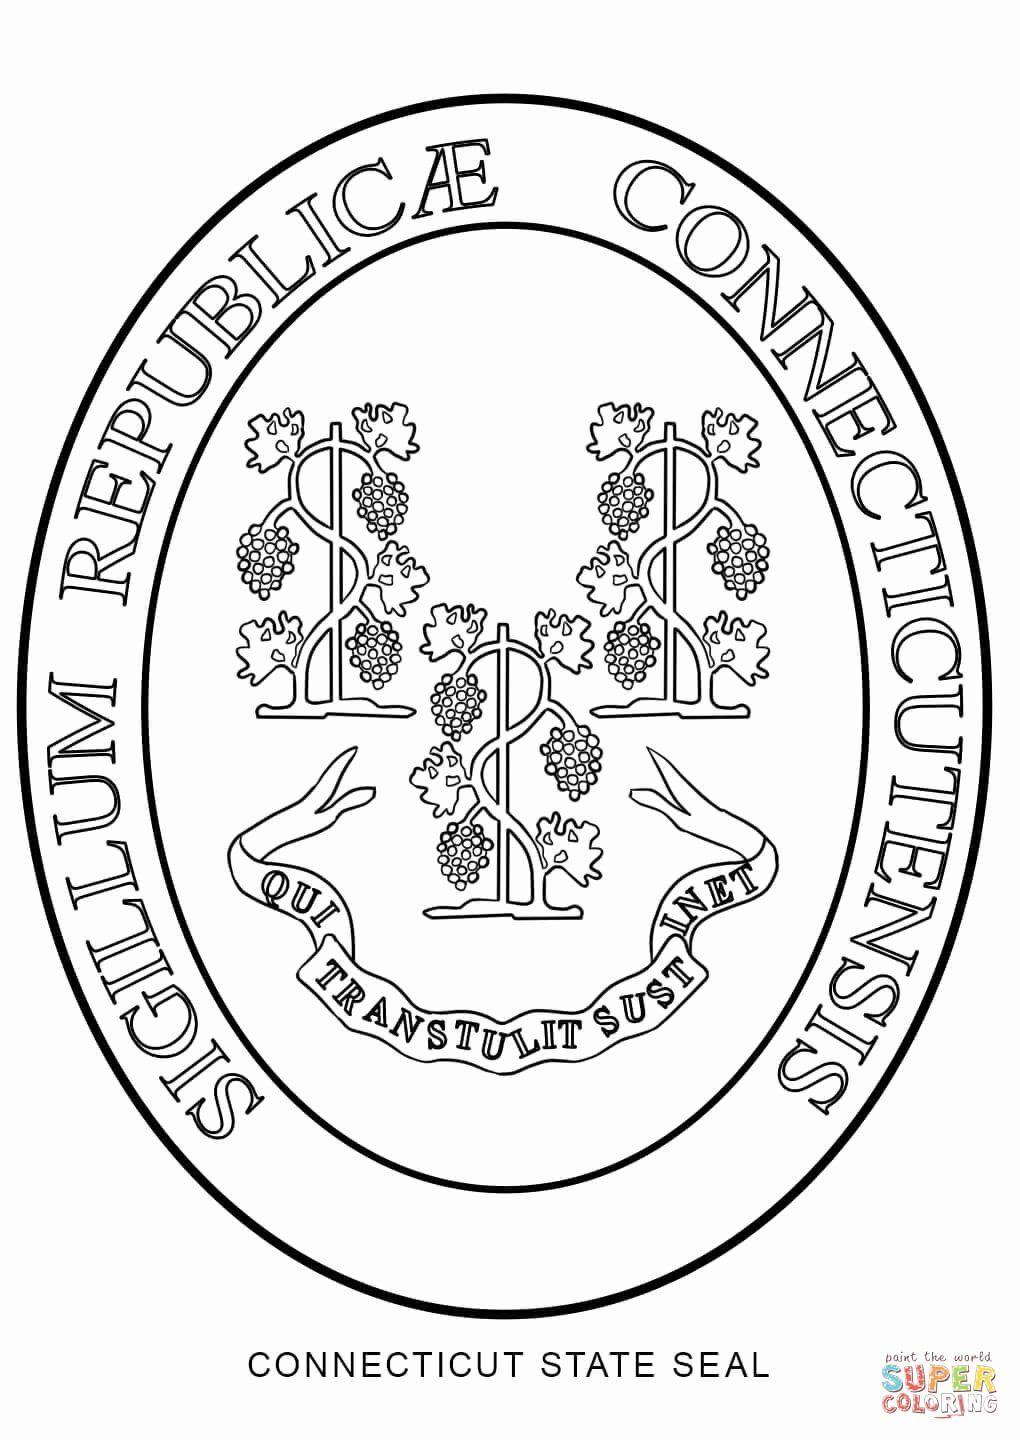 Florida State Flag Coloring Page Inspirational Connecticut State Seal Coloring Page Flag Coloring Pages Coloring Pages Coloring Pages Inspirational